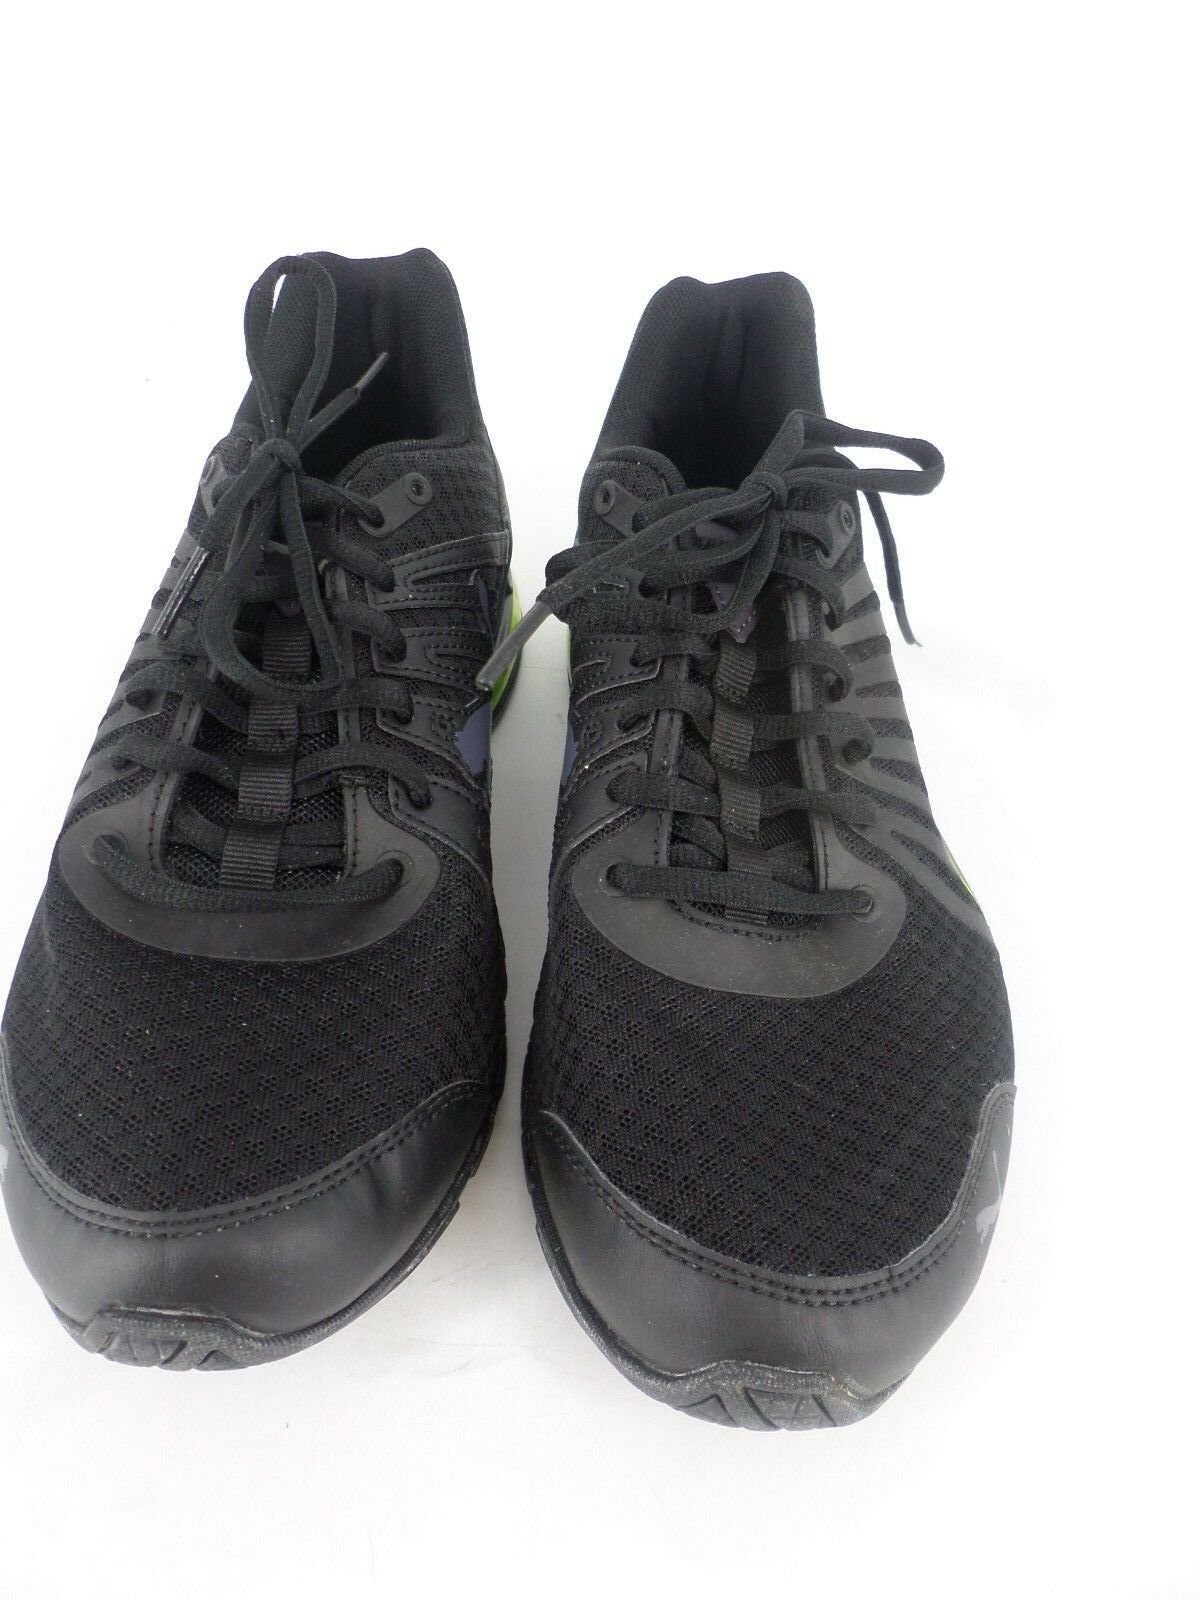 Puma Homme Noir Running Baskets UK 6 LN087 EU 39 LN087 6 XX 08 dd6f72